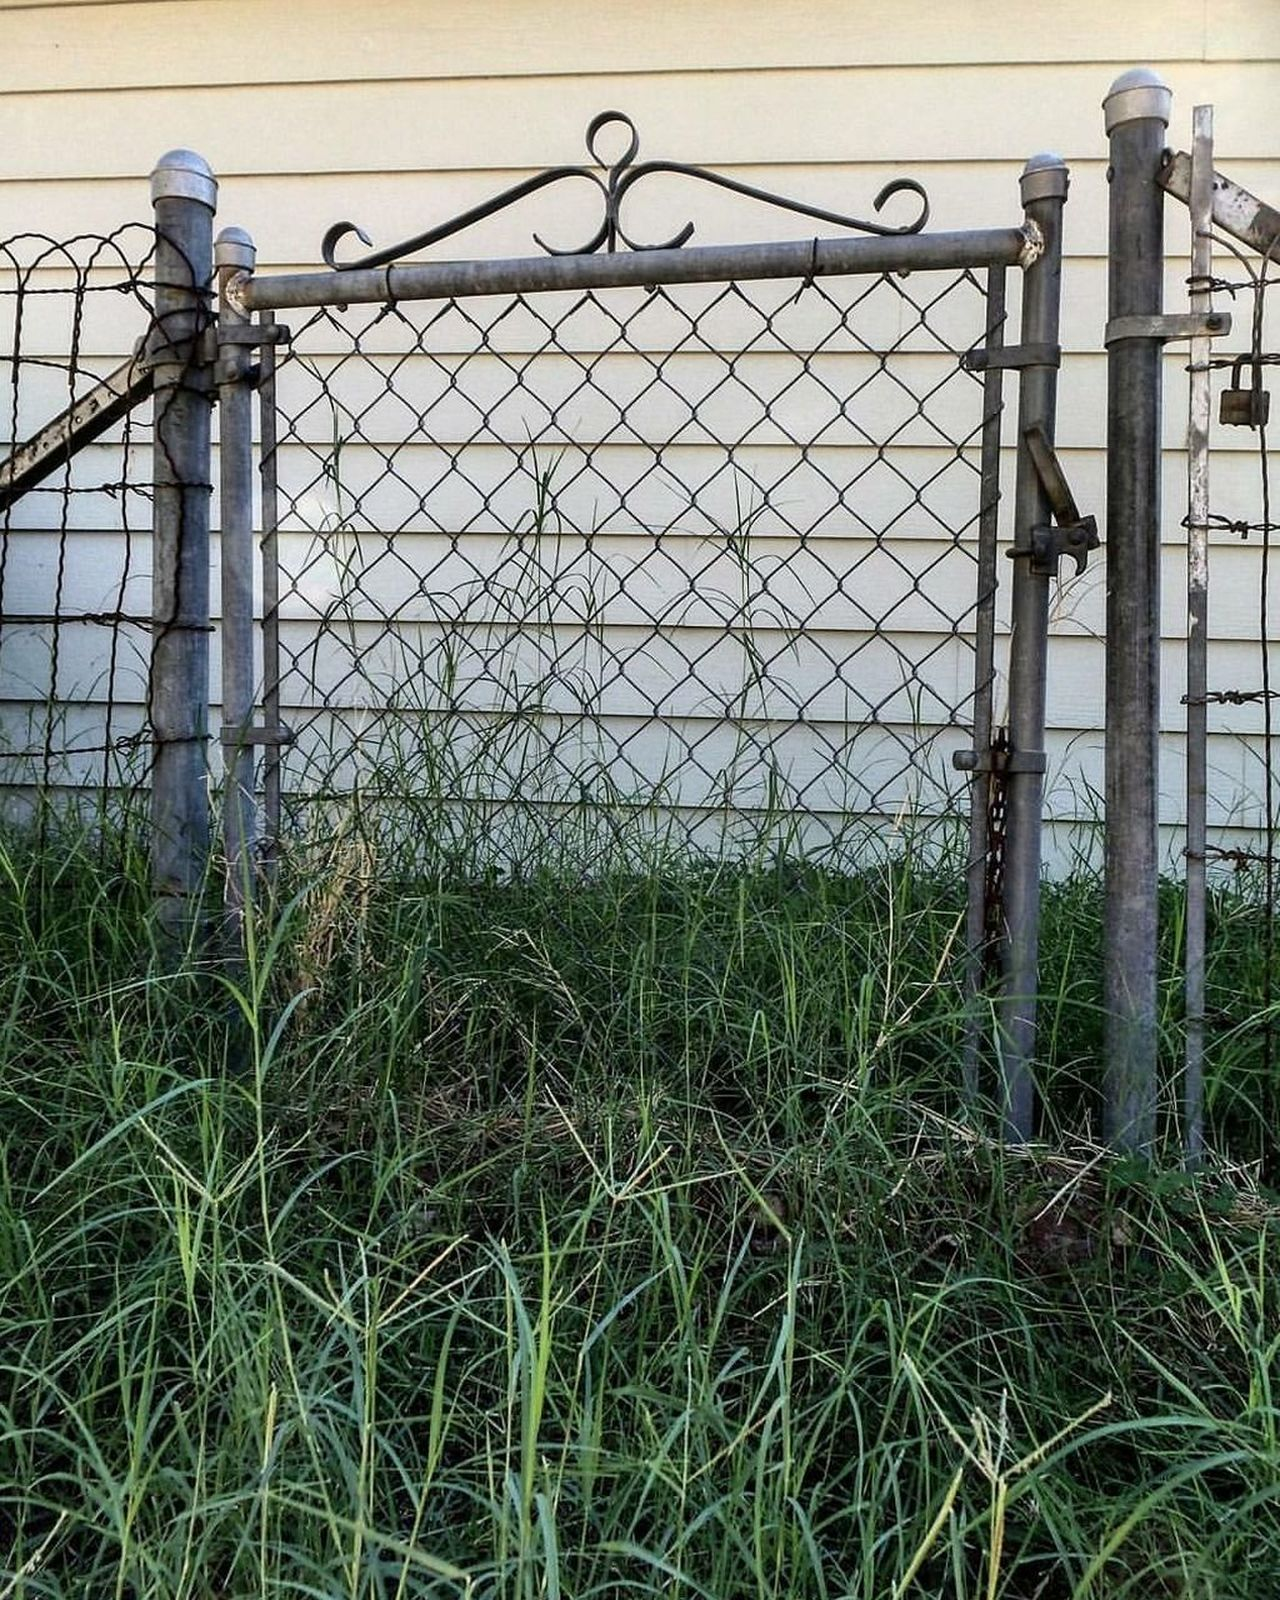 Fence Security Protection Chainlink Fence Grass Outdoors Low Angle View Beauty In Nature Beauty Of Nature EyeEmBestEdits BestofEyeEm BestEyeemShots EyeEm Best Shots EyeEm Vision Premium Collection